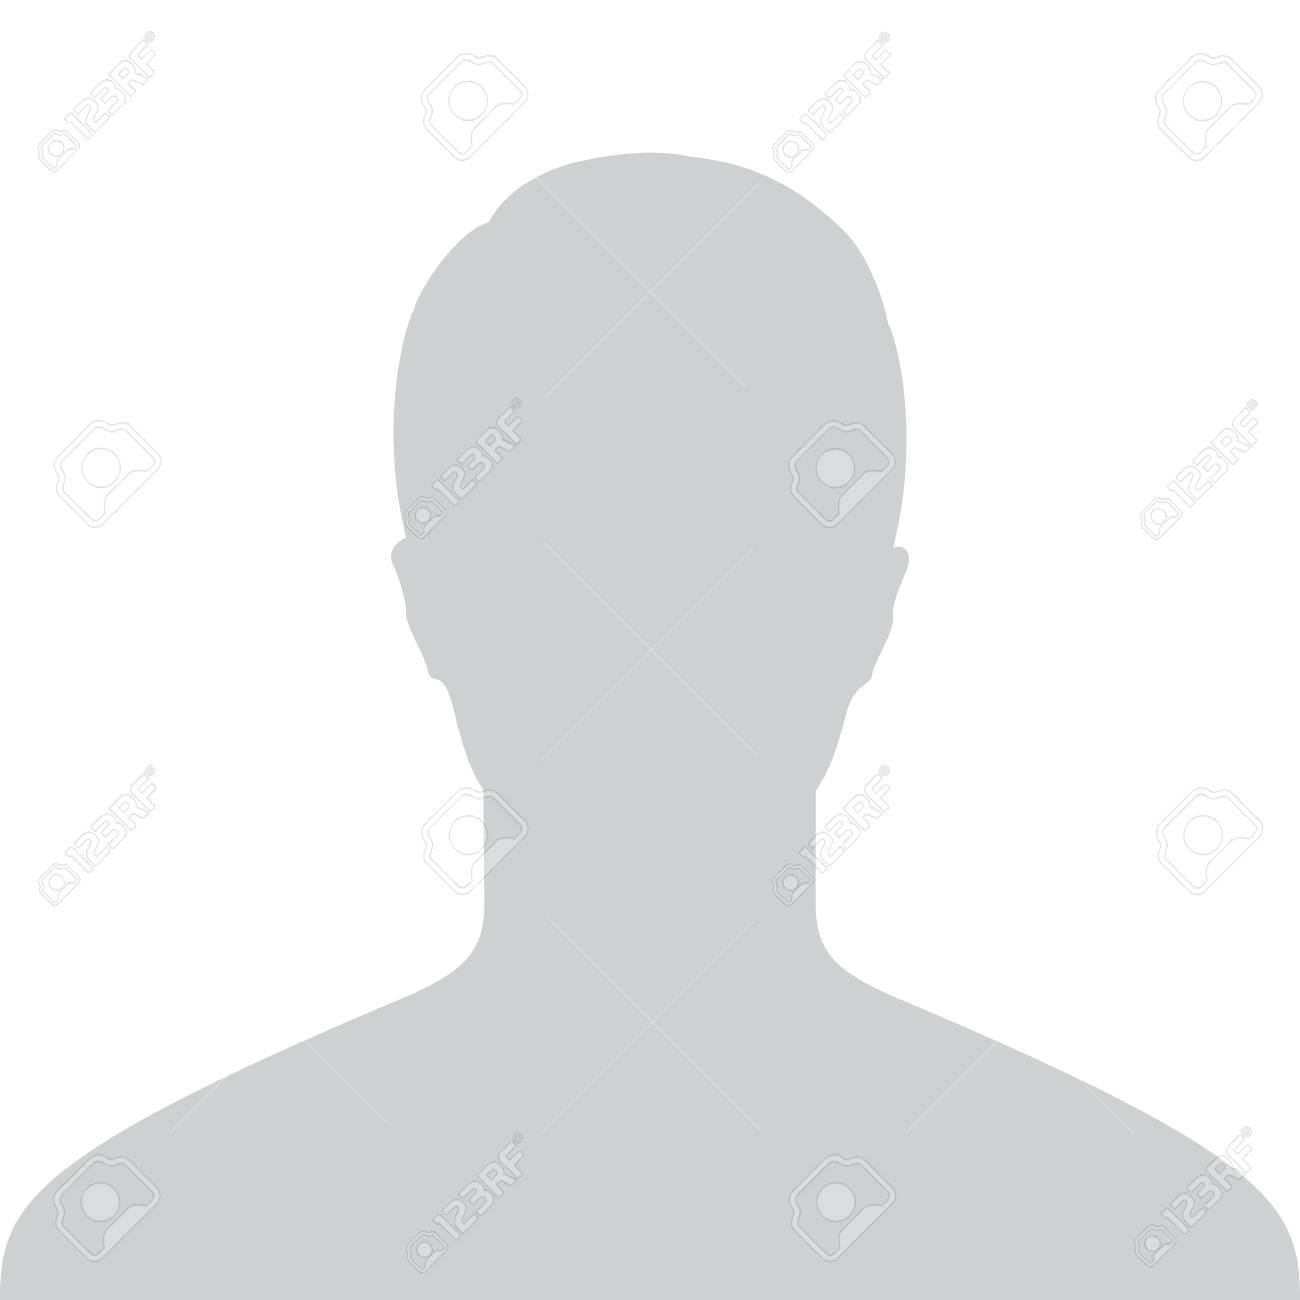 Male Default Placeholder Avatar Profile Gray Picture Isolated on White Background For Your Design. Vector illustration - 68824651